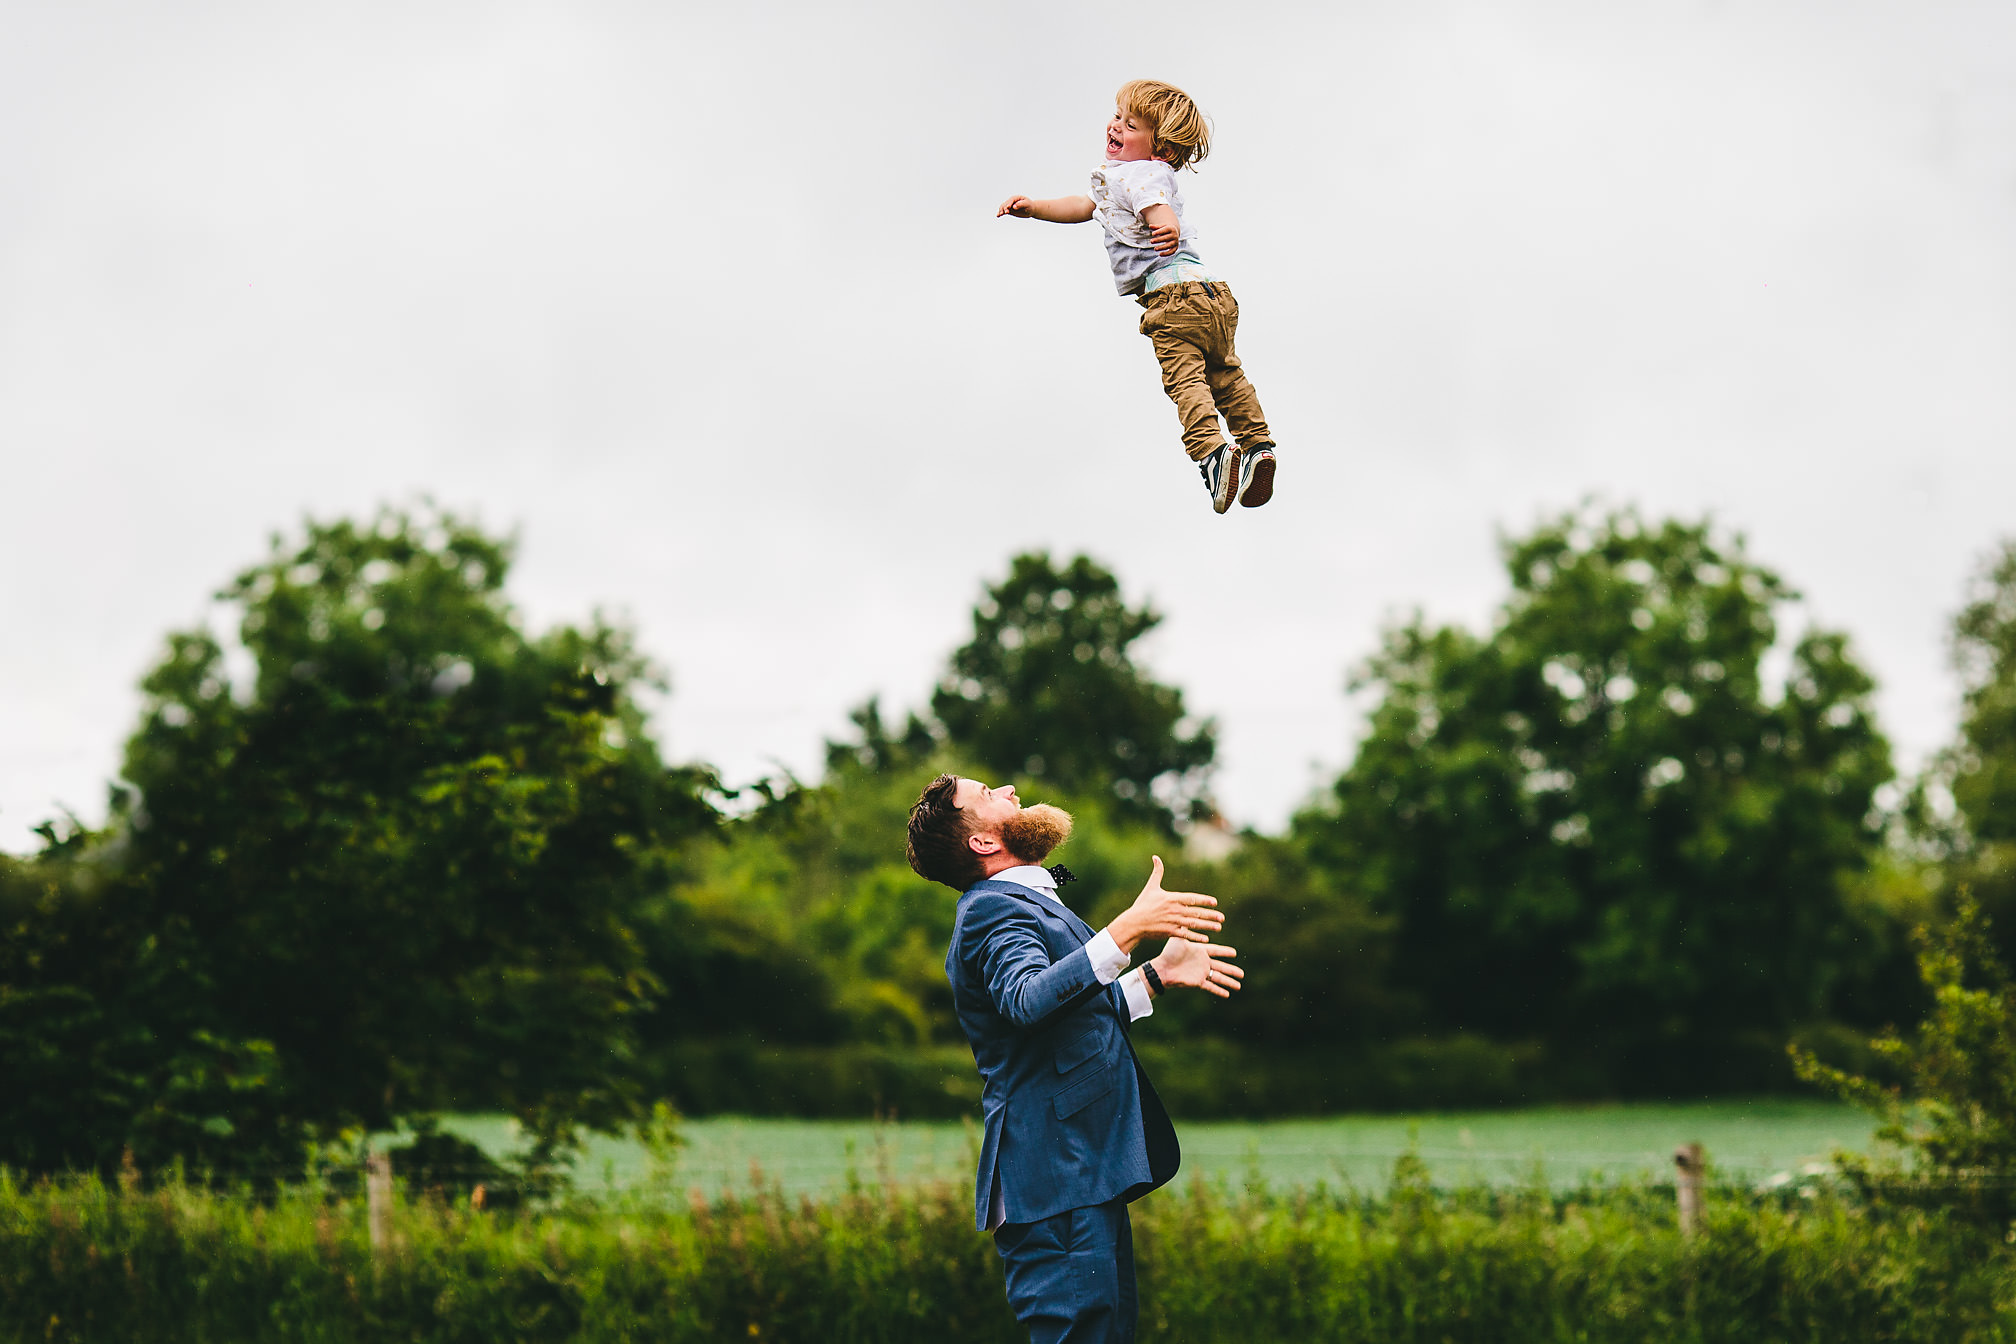 Groom throwing his son in the air with joy